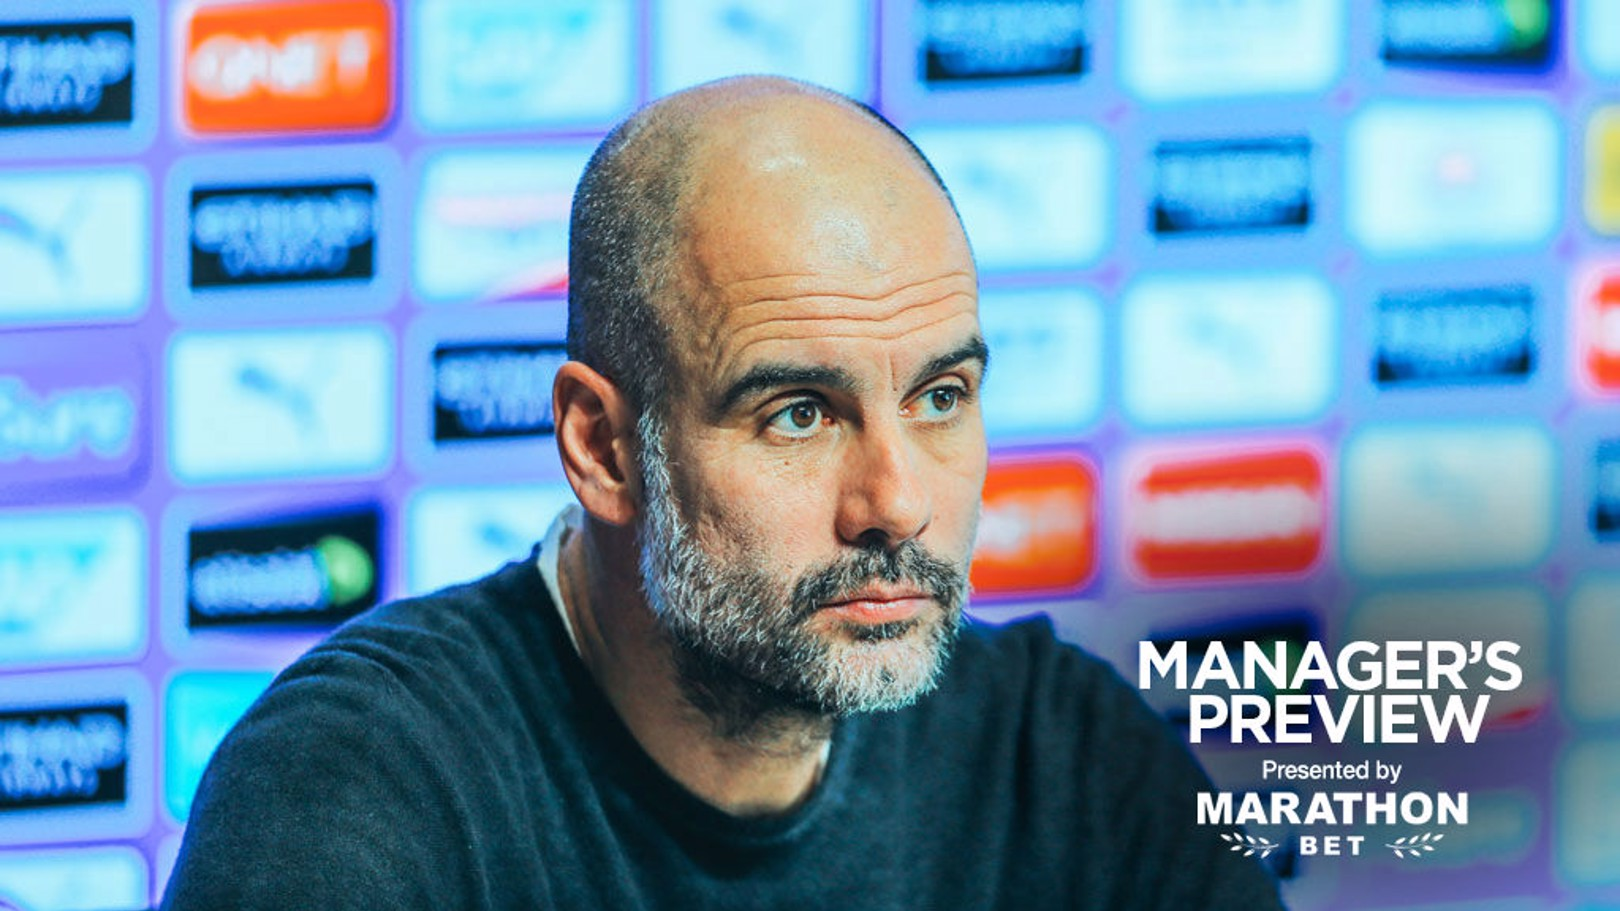 Pep Guardiola na coletiva de imprensa do Dérbi.